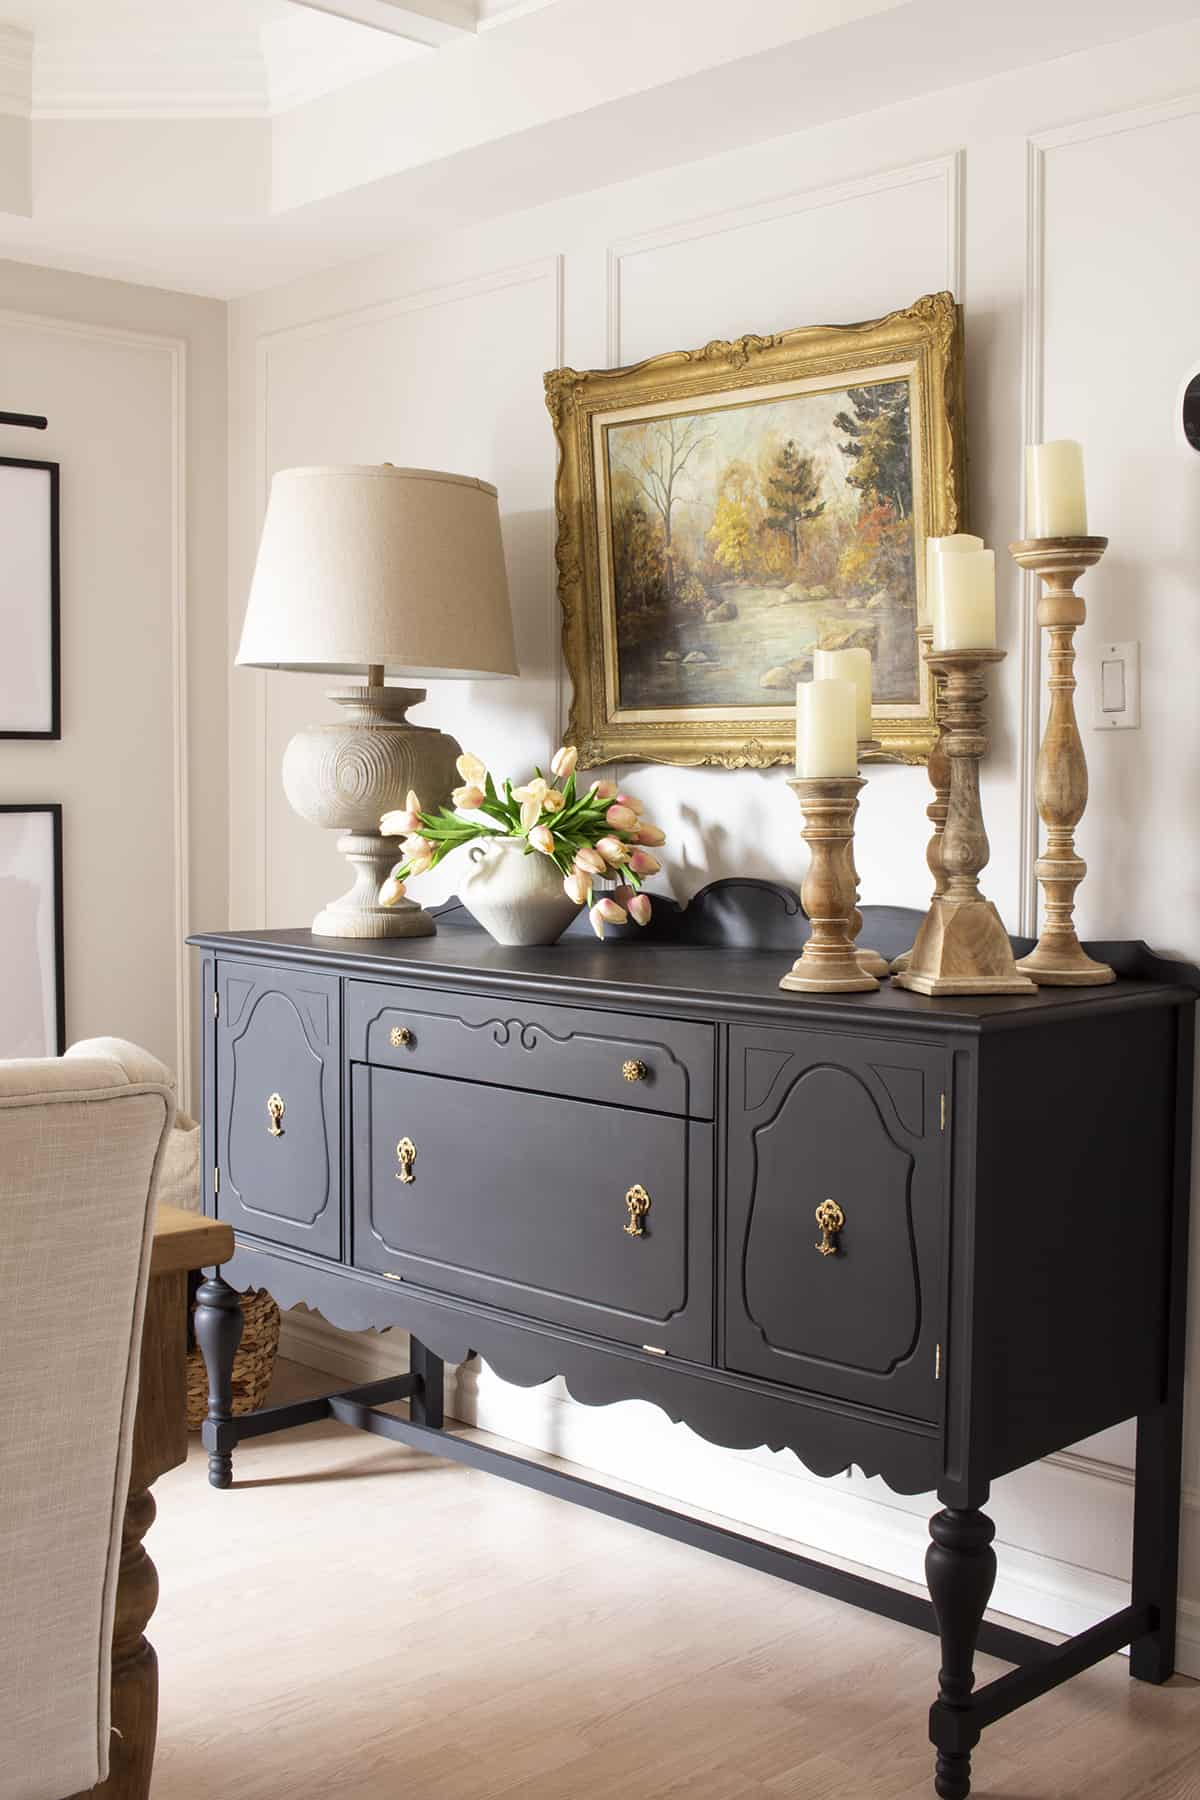 Black Vintage Buffet with Gold Accents